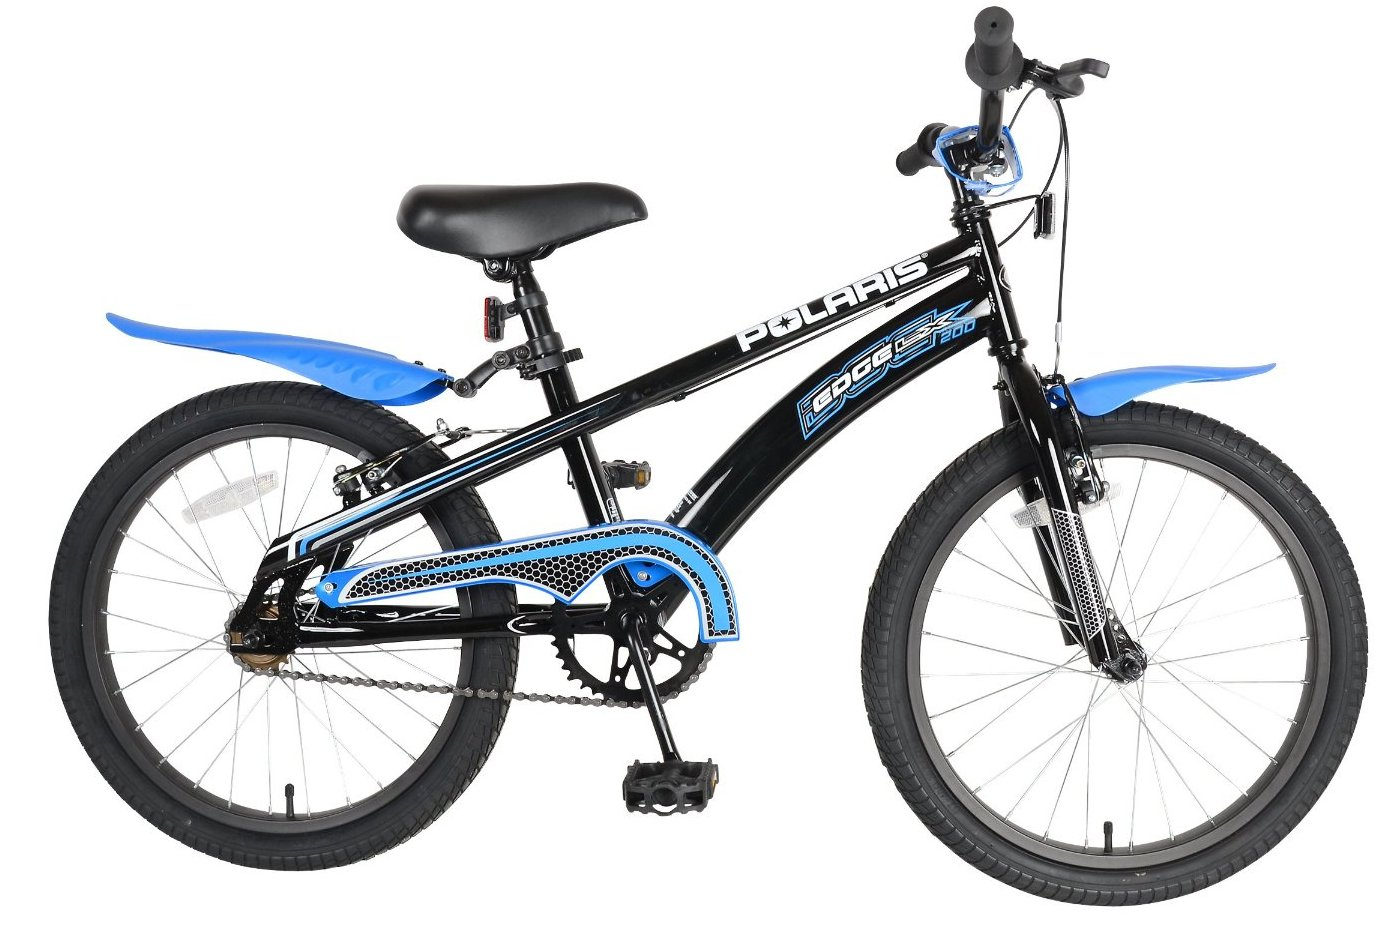 Polaris Edge LX 200 20 Kids Bike